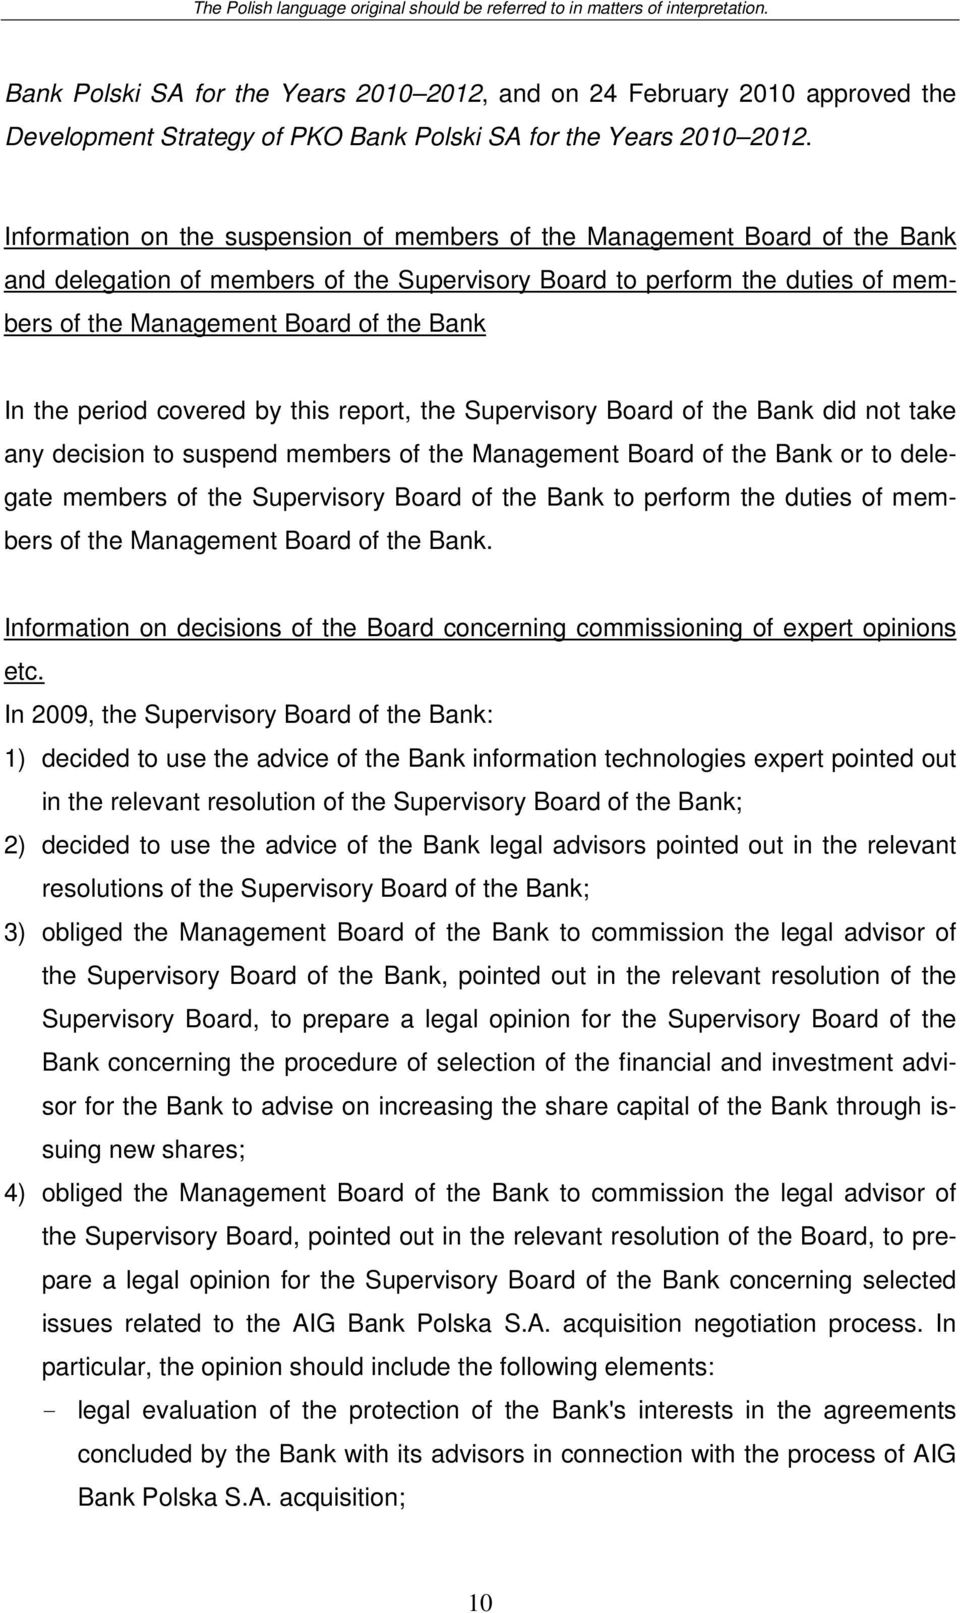 the Supervisory did not take any decision to suspend members of the Management or to delegate members of the Supervisory to perform the duties of members of the Management.